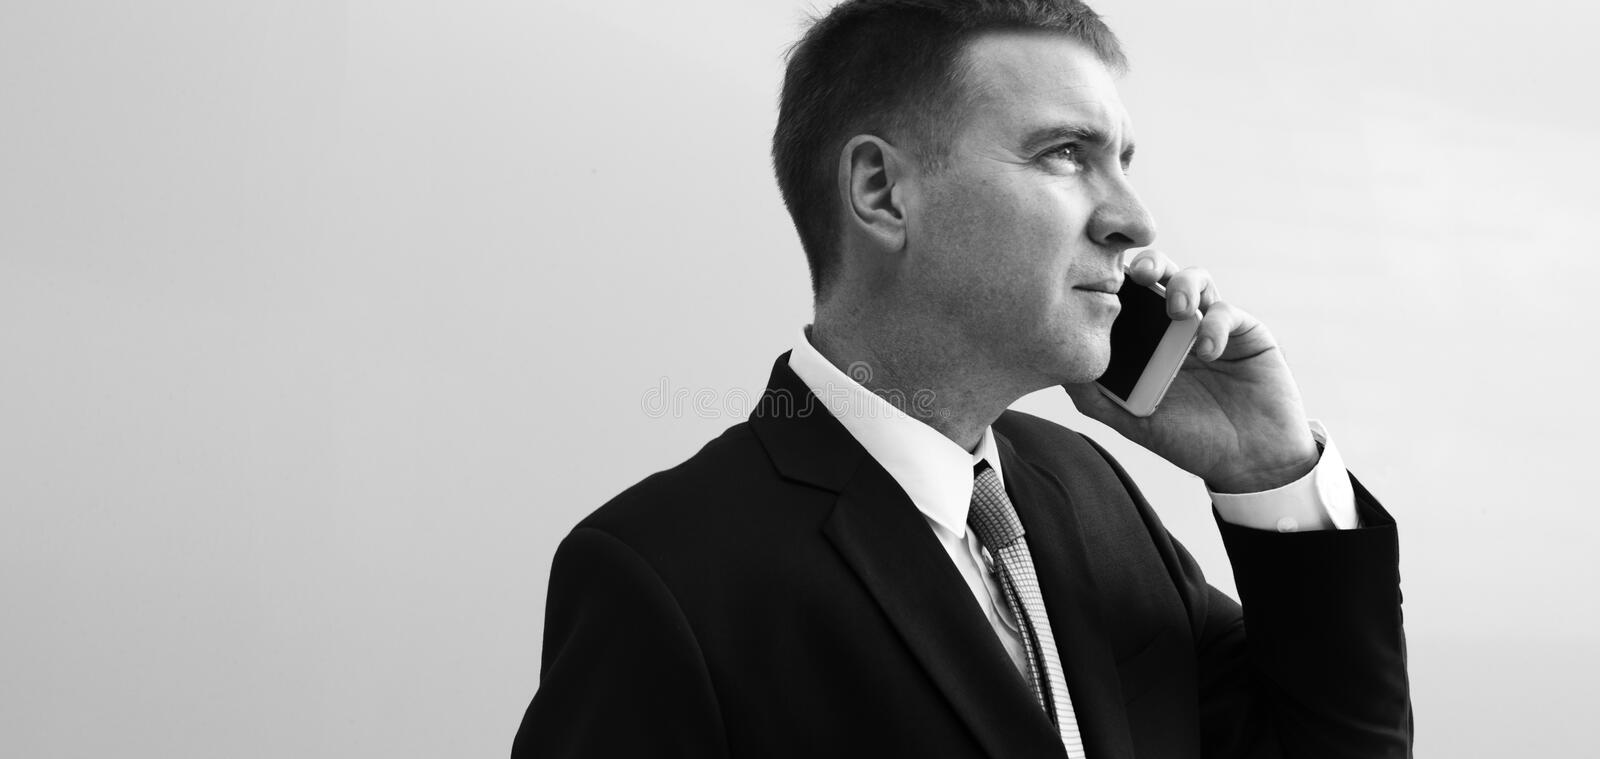 Business Using Phone Discussion Busy Working stock photography